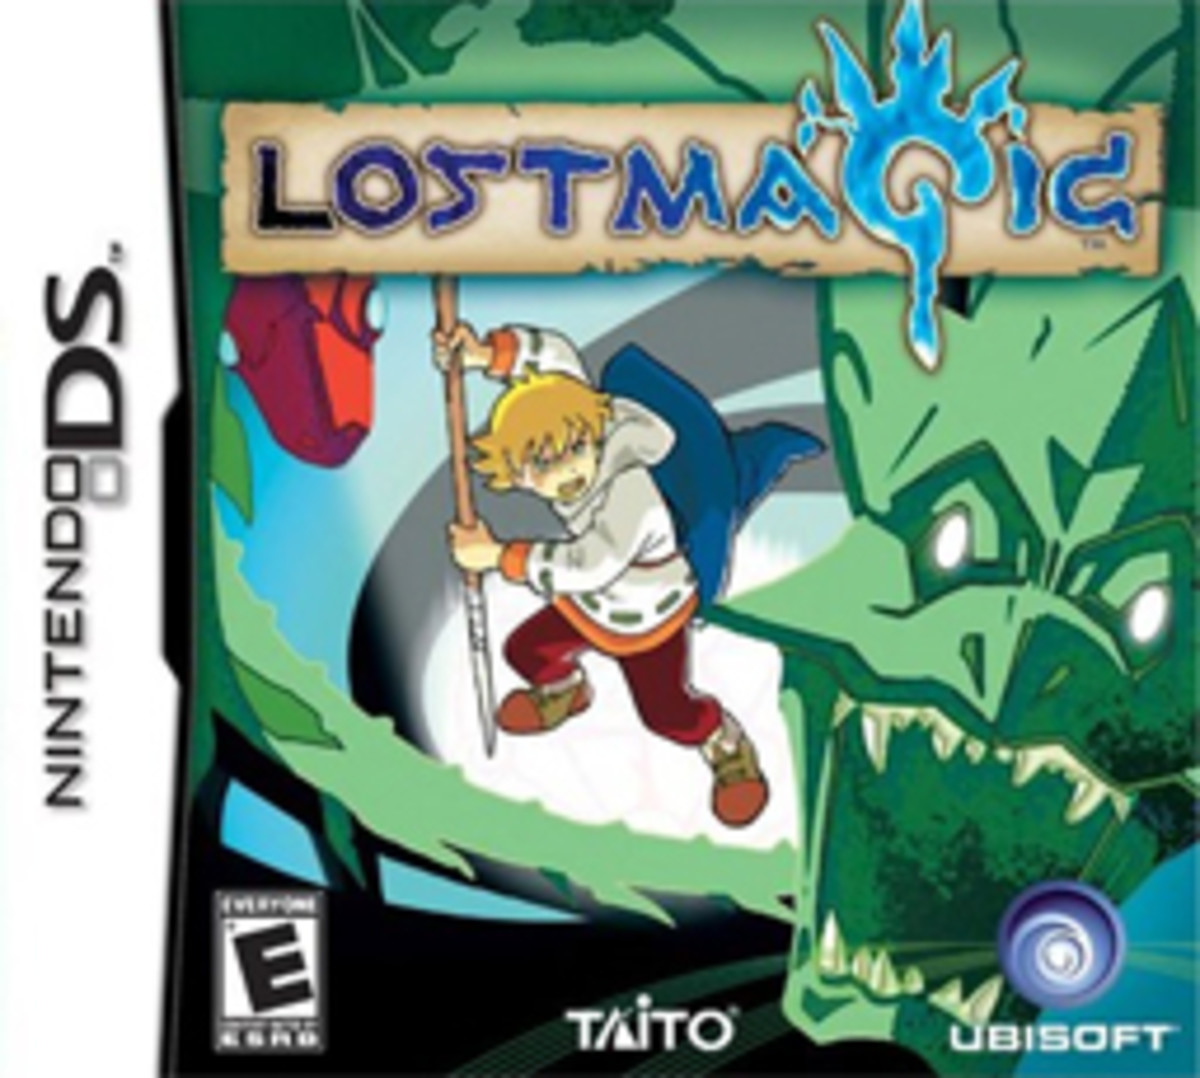 A Pokemon Style Game That Blends Monster Capture With More Traditional RPG Gameplay.